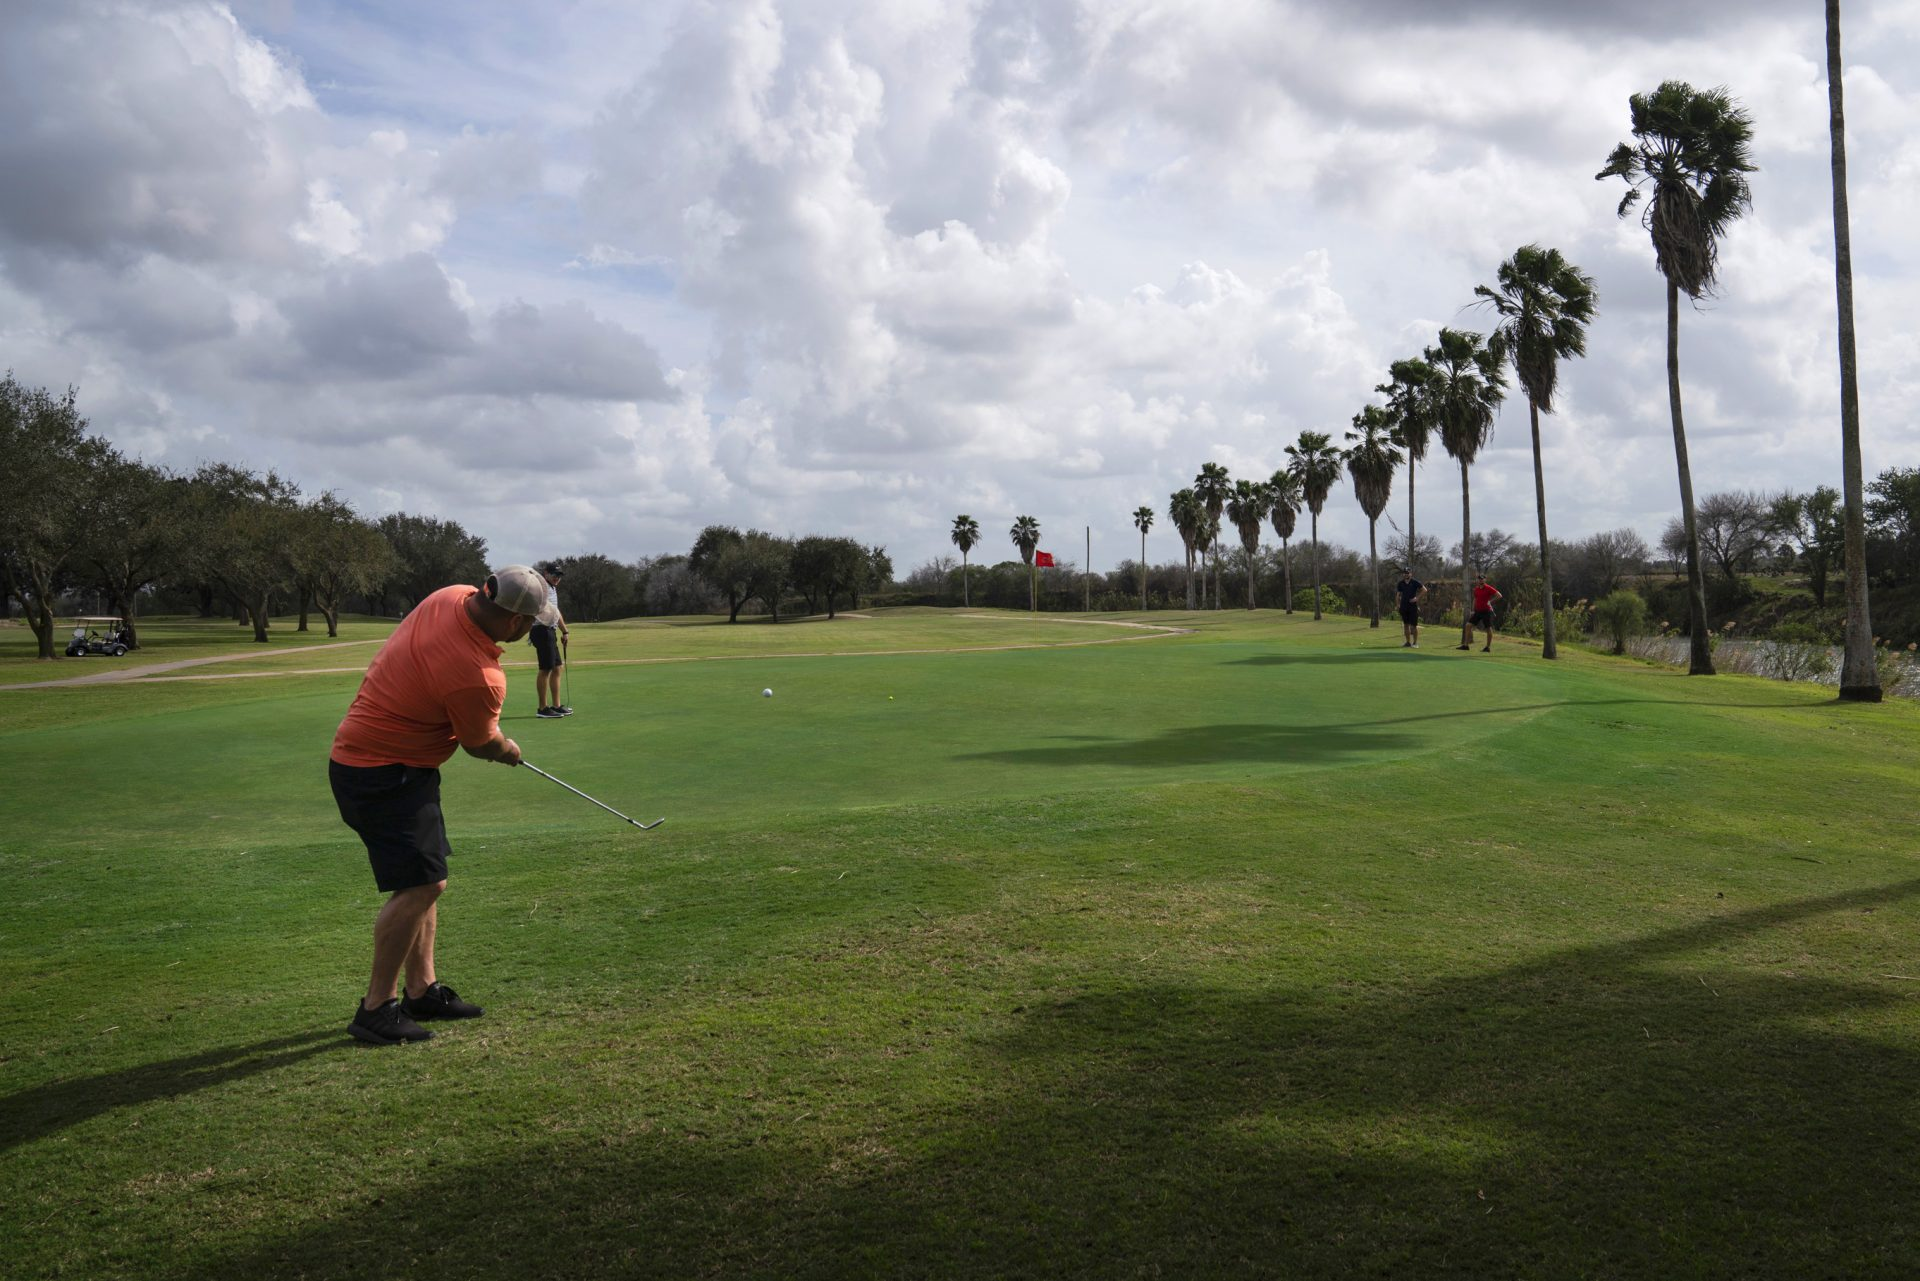 Memo Ibarra hits the ball at River Bend Resort & Golf Club in Brownsville, Texas. The 18-hole golf course would have 15 of them on the south side of Trump's proposed border wall.